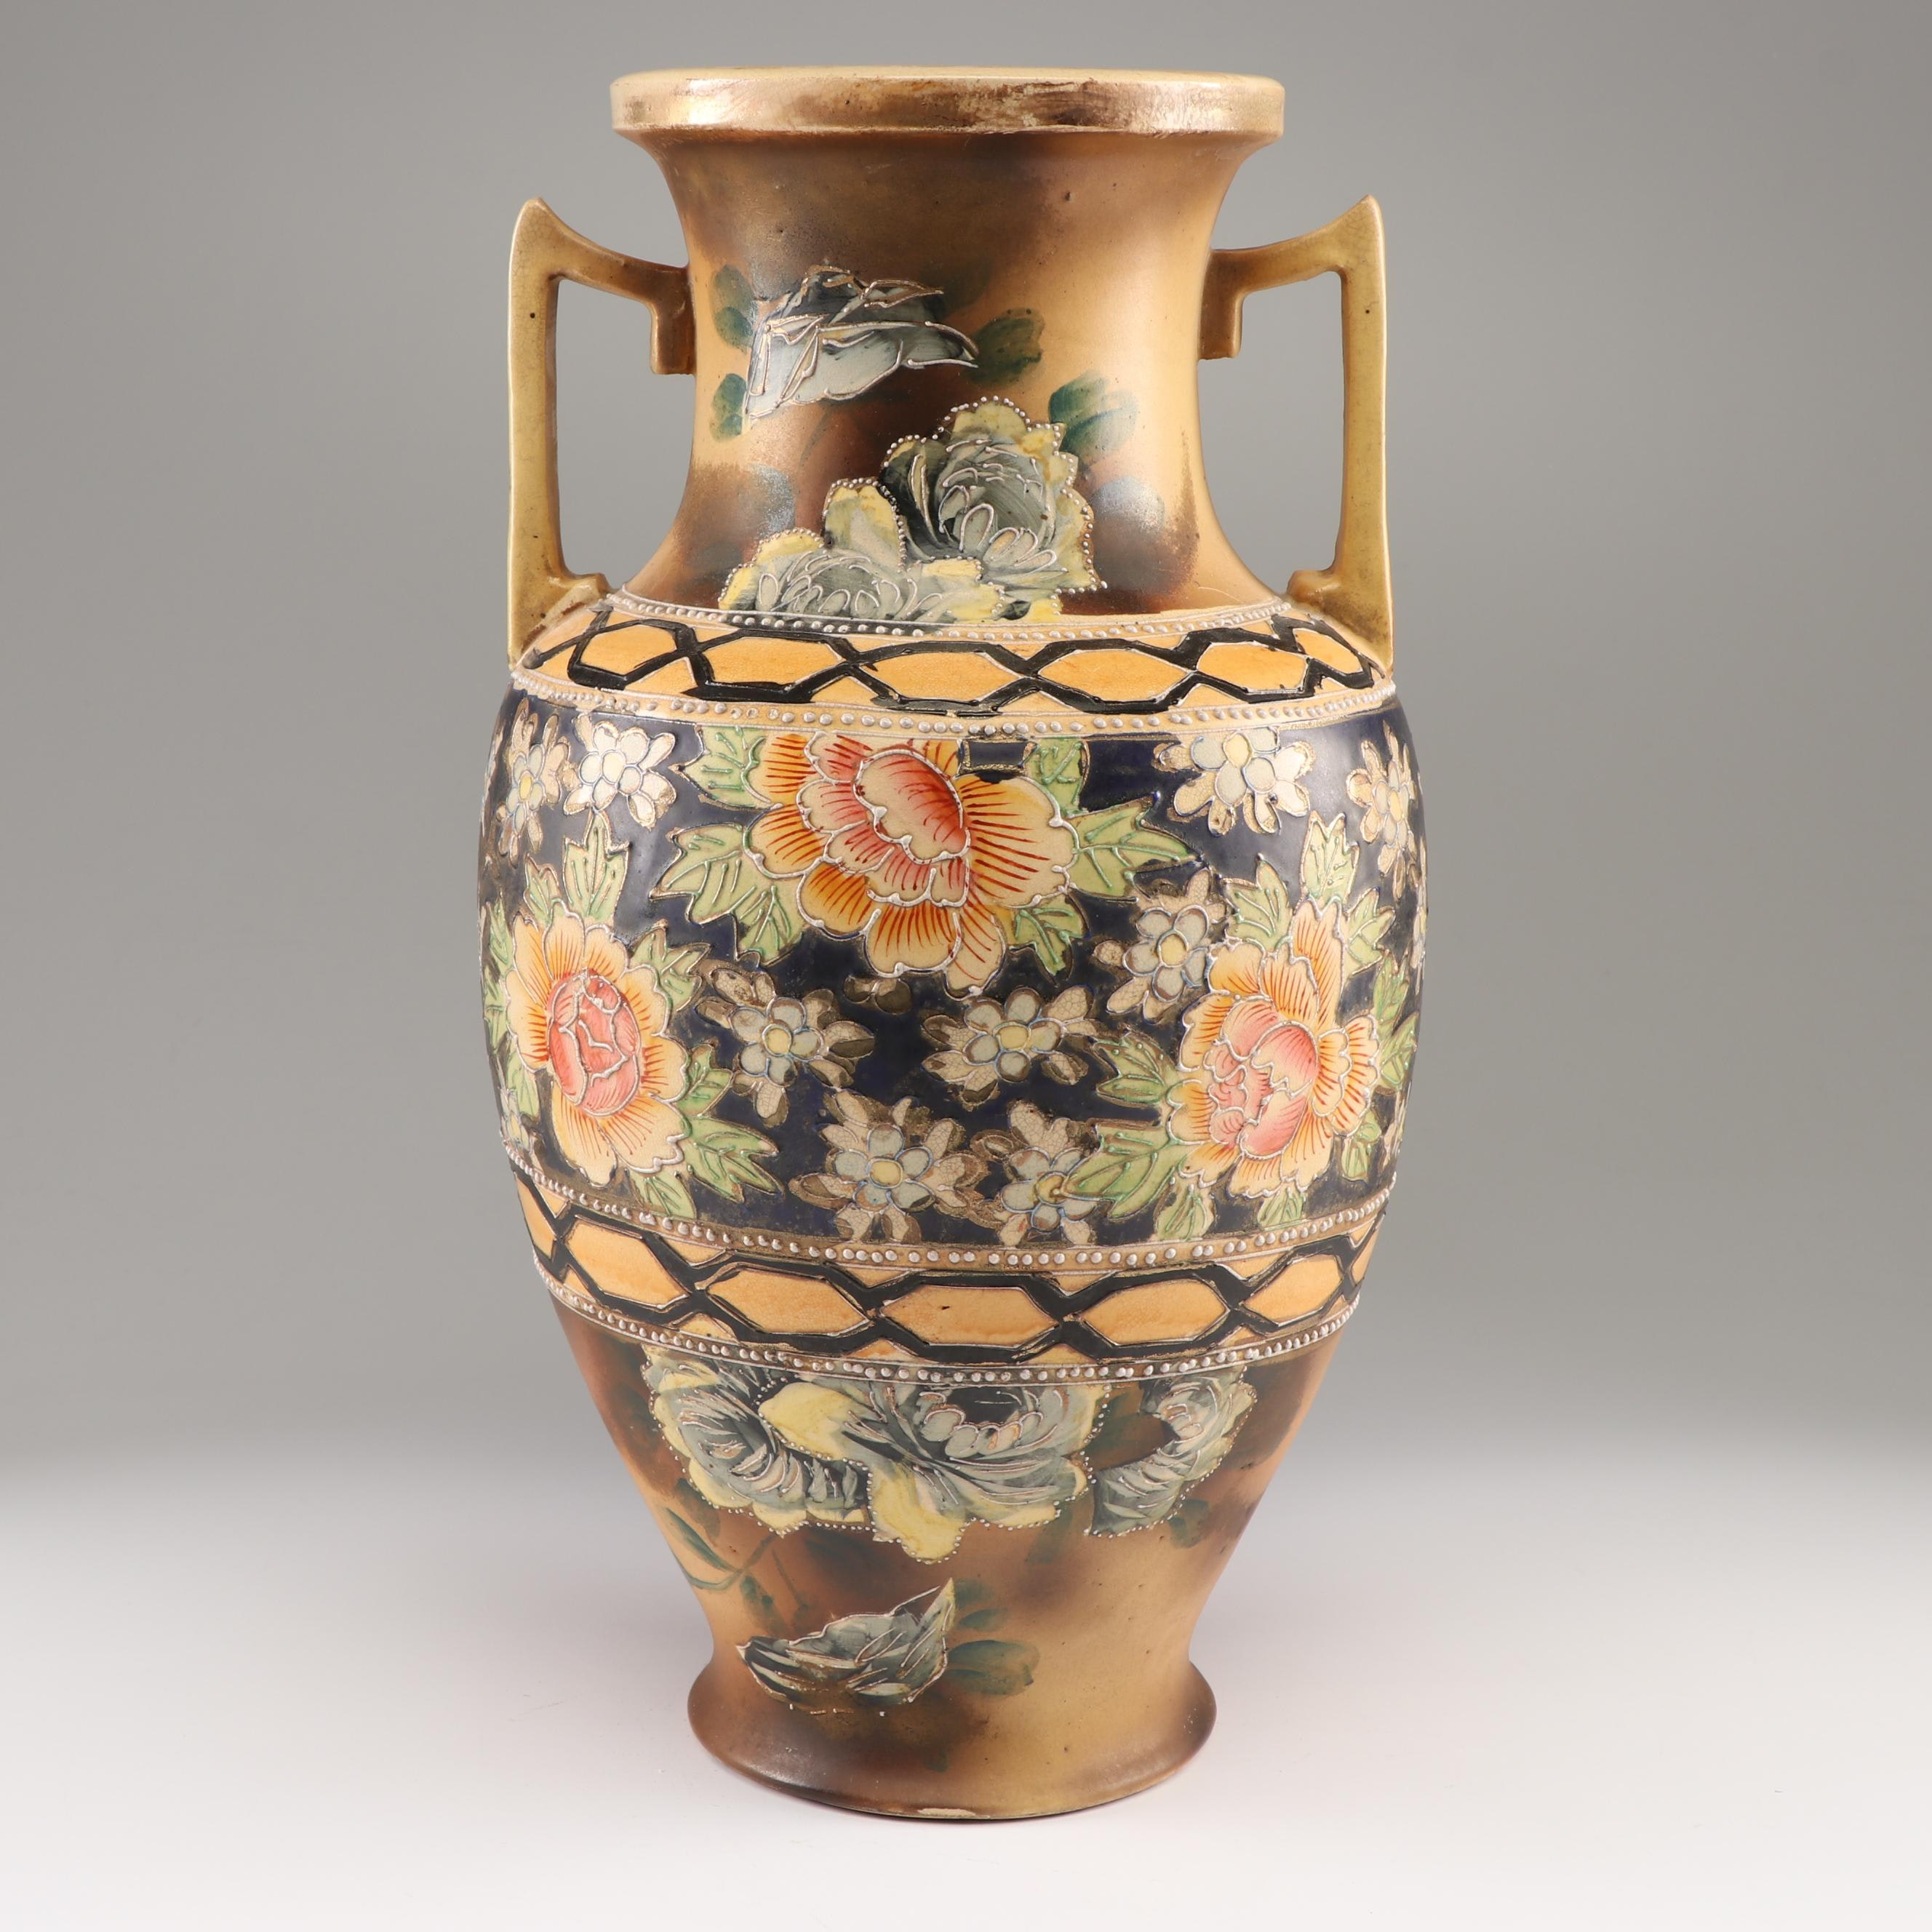 Hand Decorated Italian Art Pottery Vase, Early to Mid 20th Century